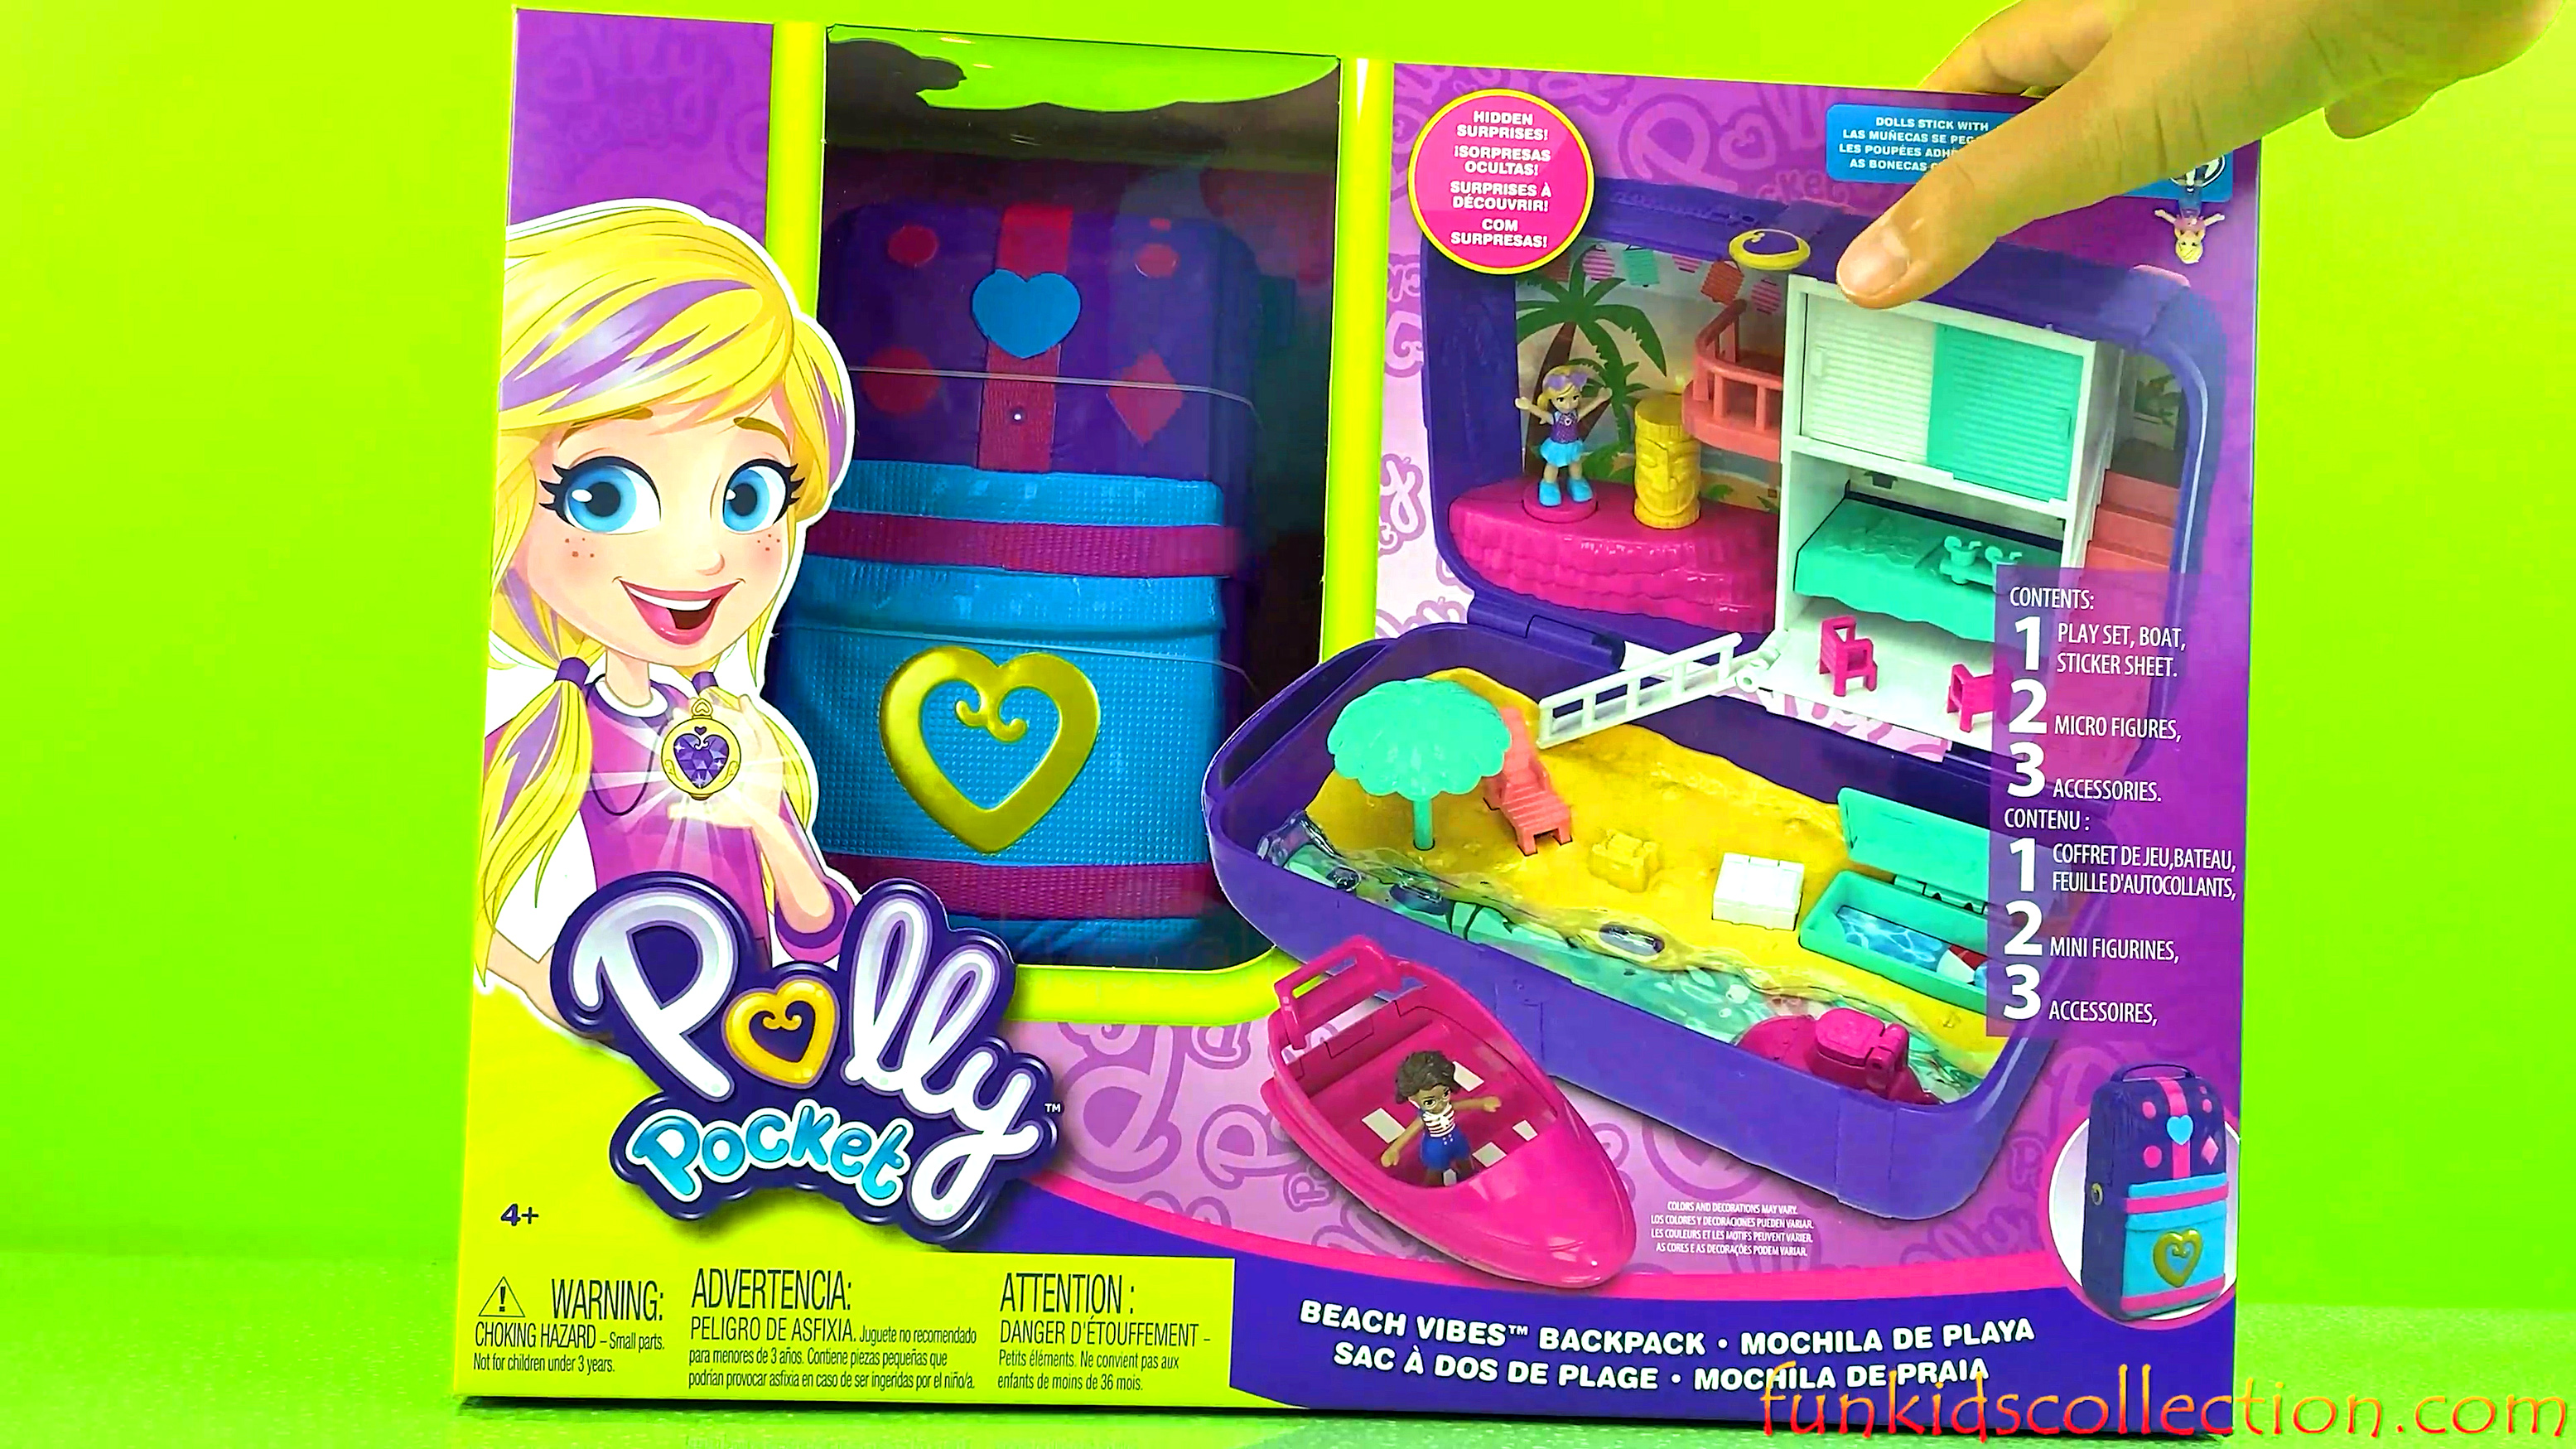 Polly Pocket Toys | Polly Pocket Beach Vibes Backpack Playset | EBD Toys - funkidscollection.com